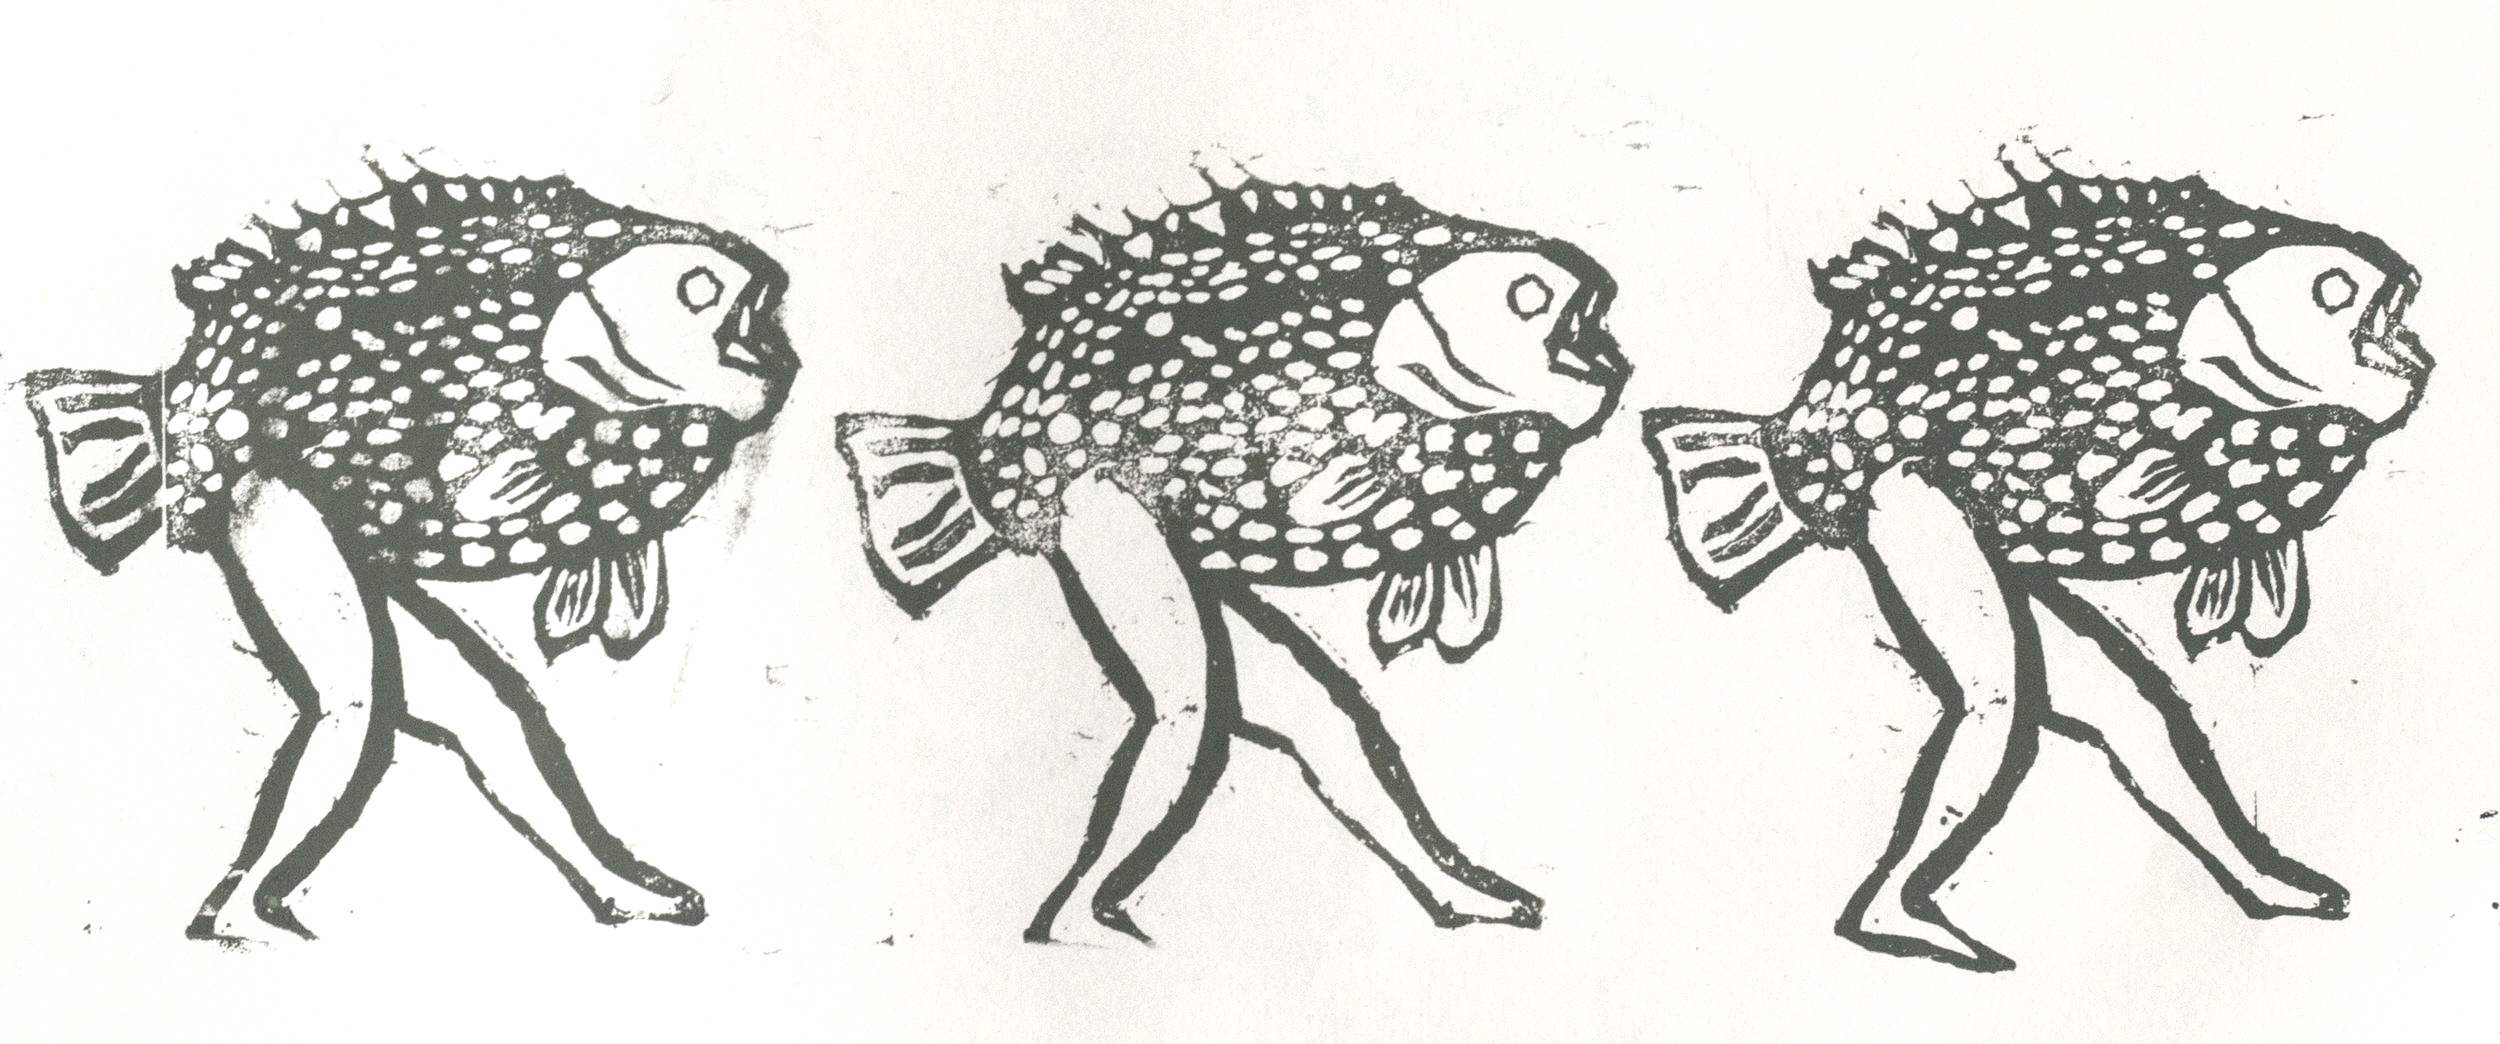 fish_with_legs.jpg